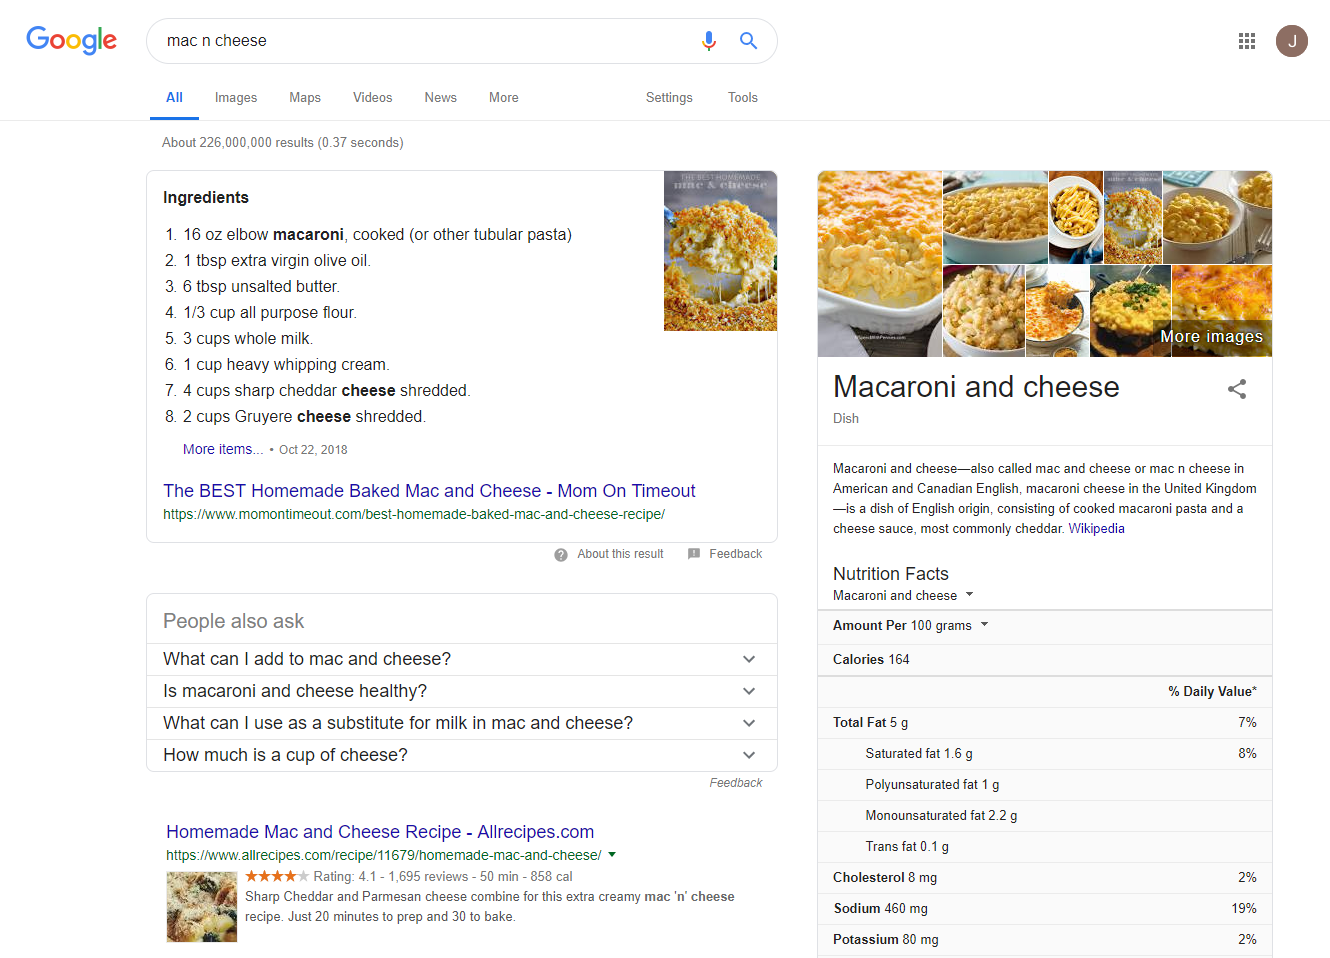 Example of rich snippets in Google SERP